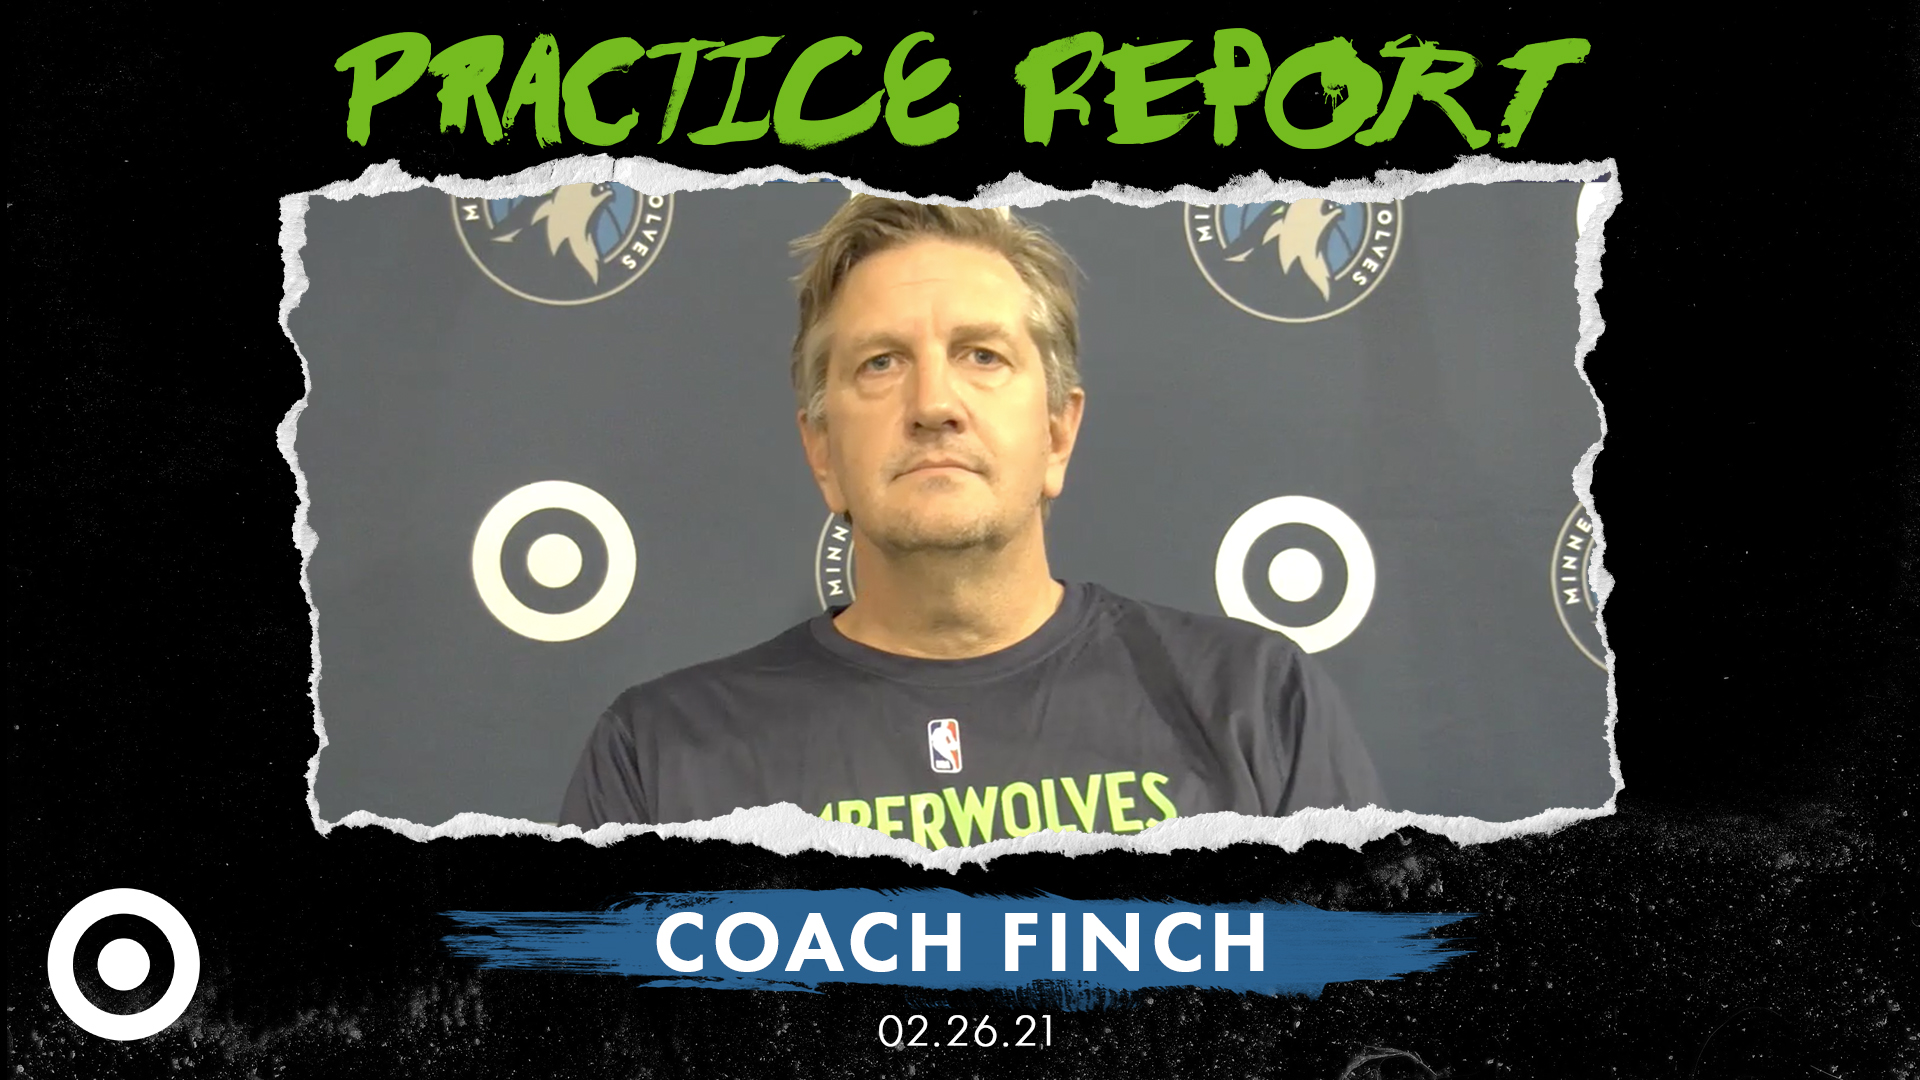 Coach Finch Practice Report - February 26, 2021